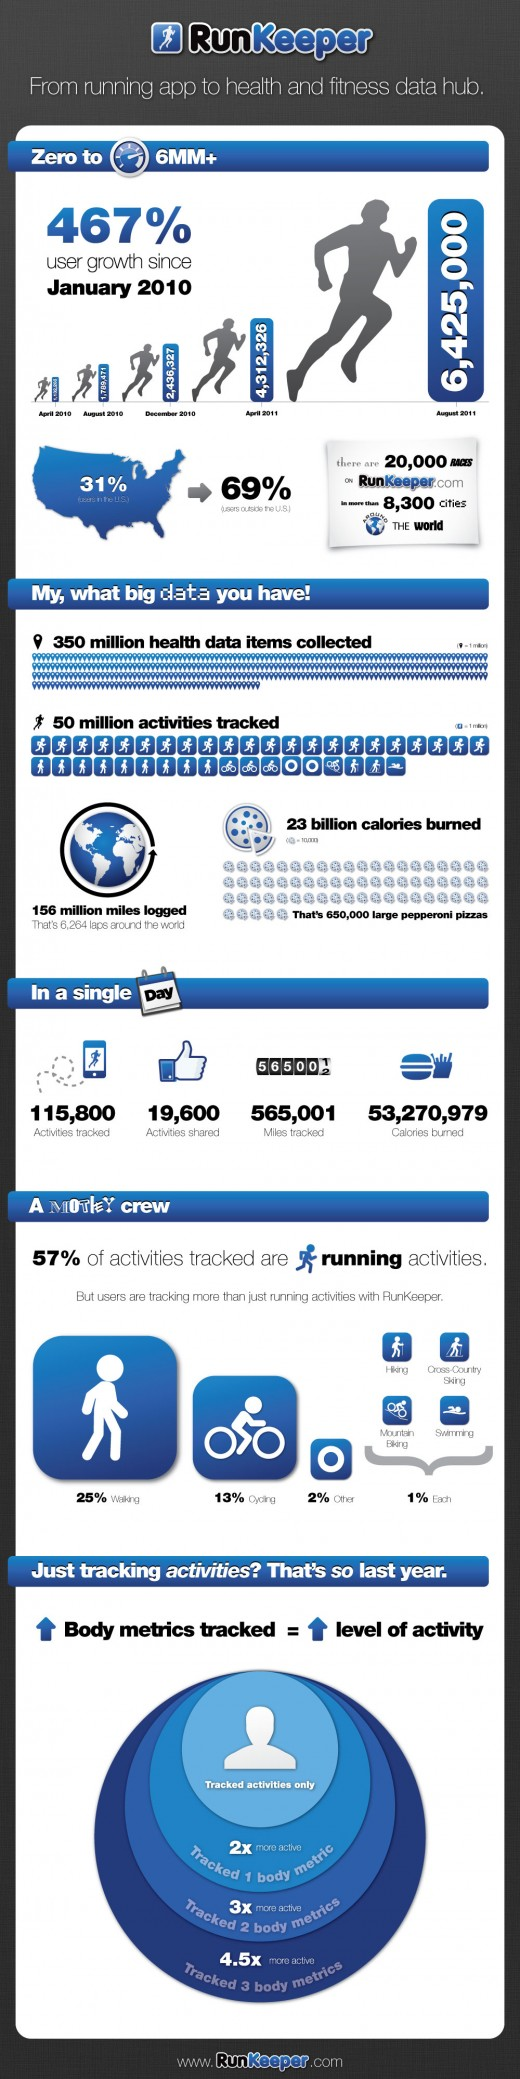 RunKeeper infographic 520x2079 23 billion calories burned on RunKeeper, and other fun stats [Infographic]